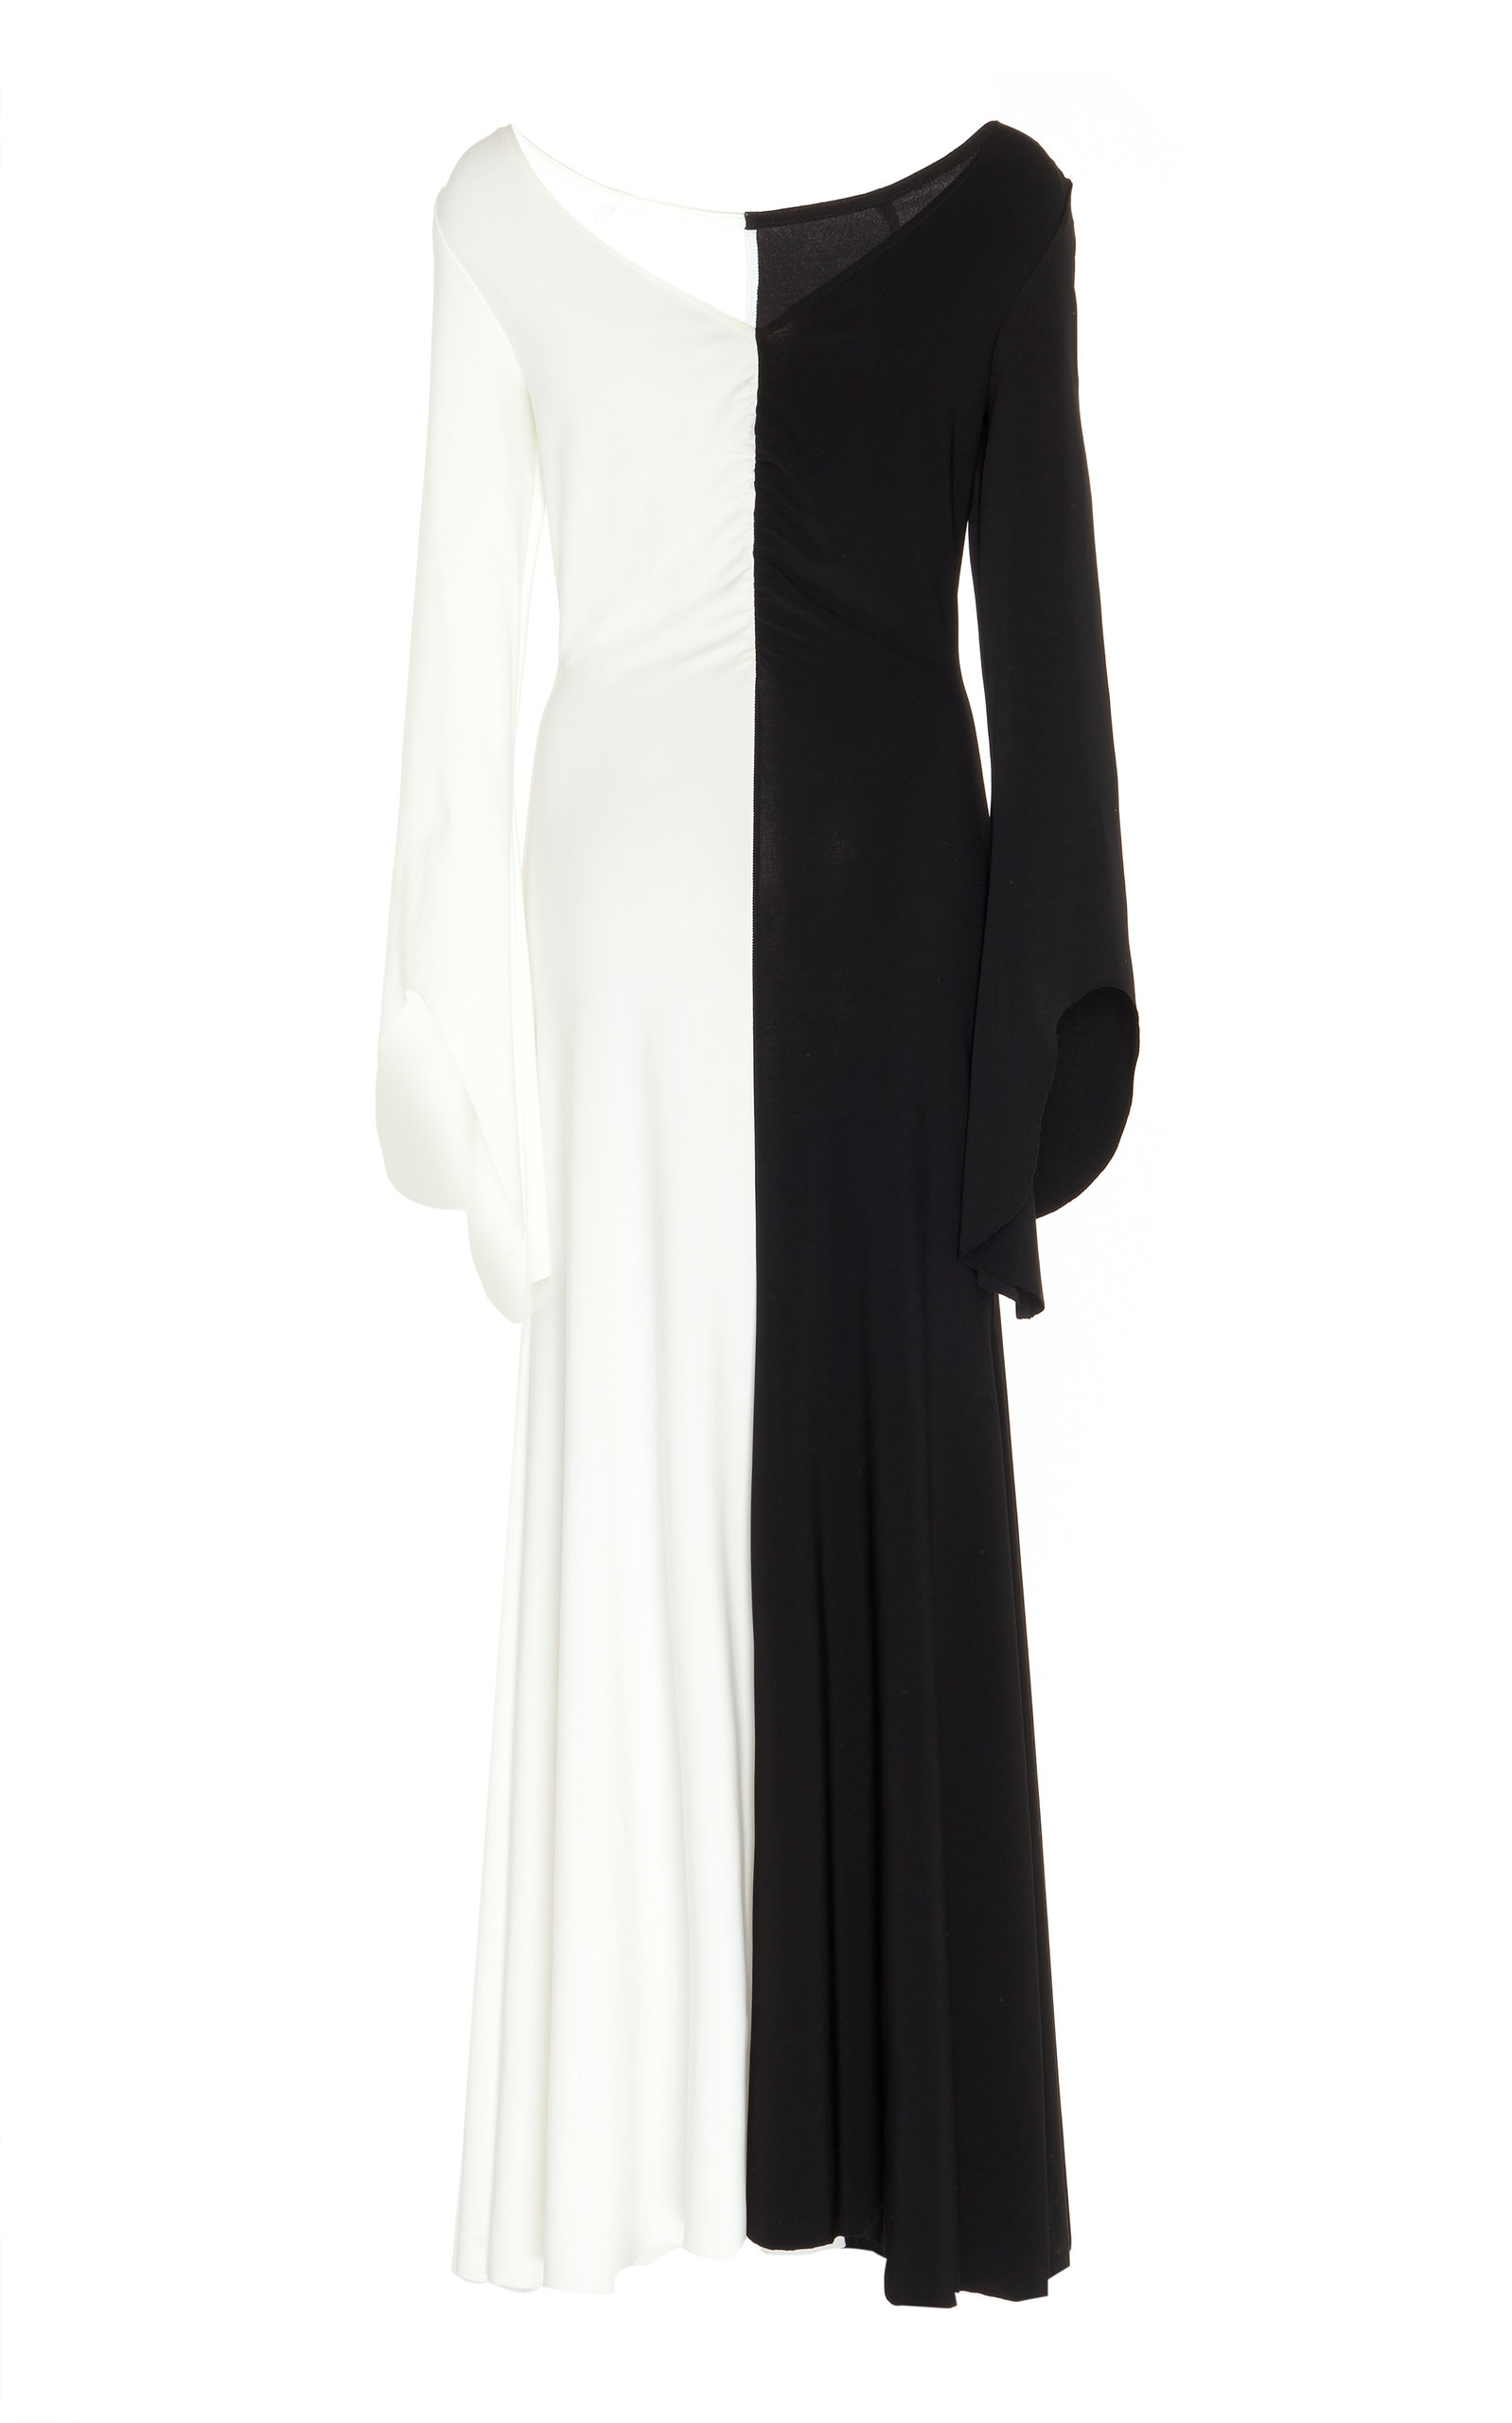 Buy A.W.A.K.E. MODE Contrast Stretch-Jersey Maxi Dress online, shop A.W.A.K.E. MODE at the best price